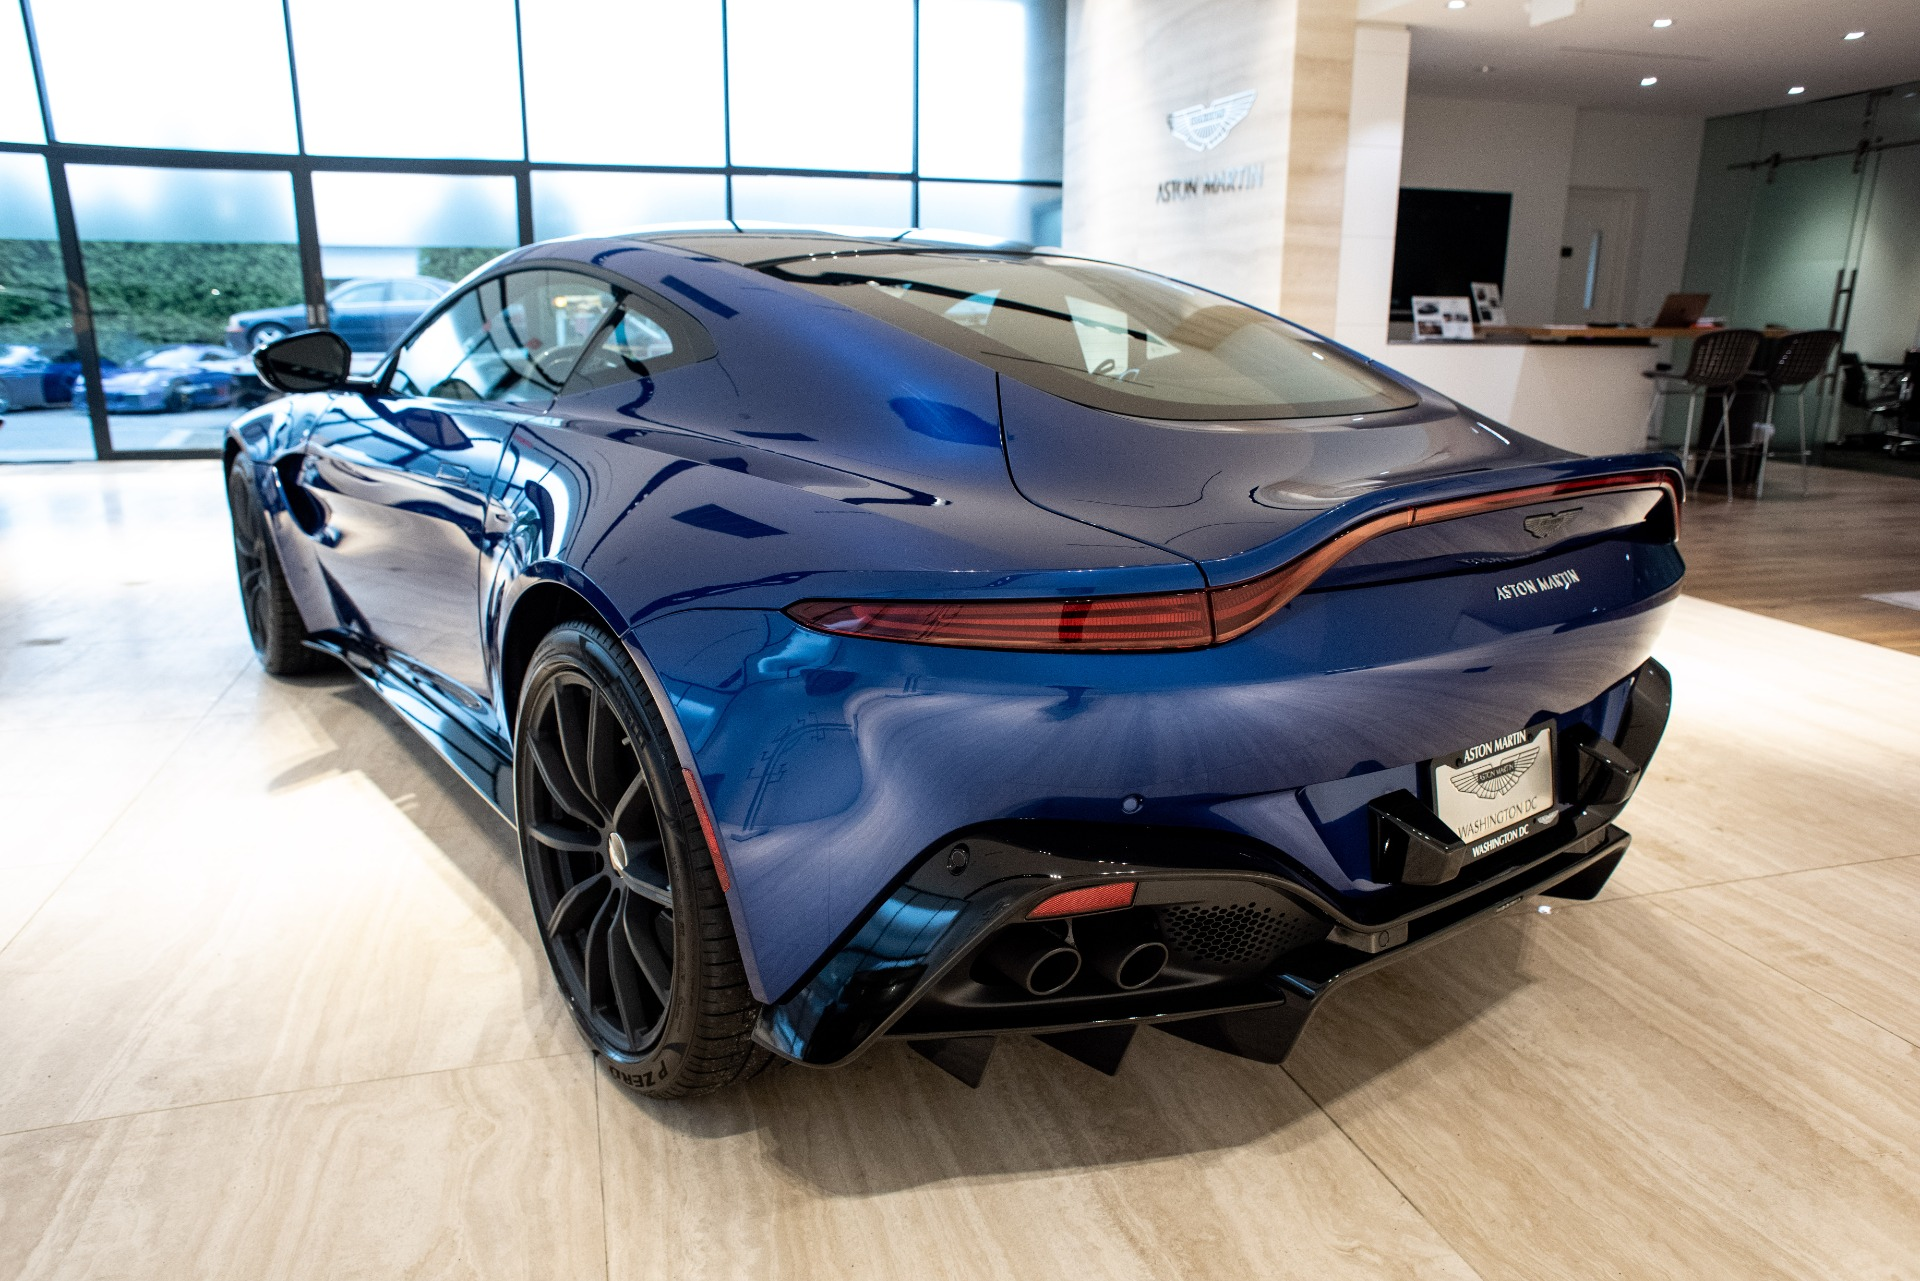 2019 Aston Martin Vantage Stock 9nn01614 For Sale Near